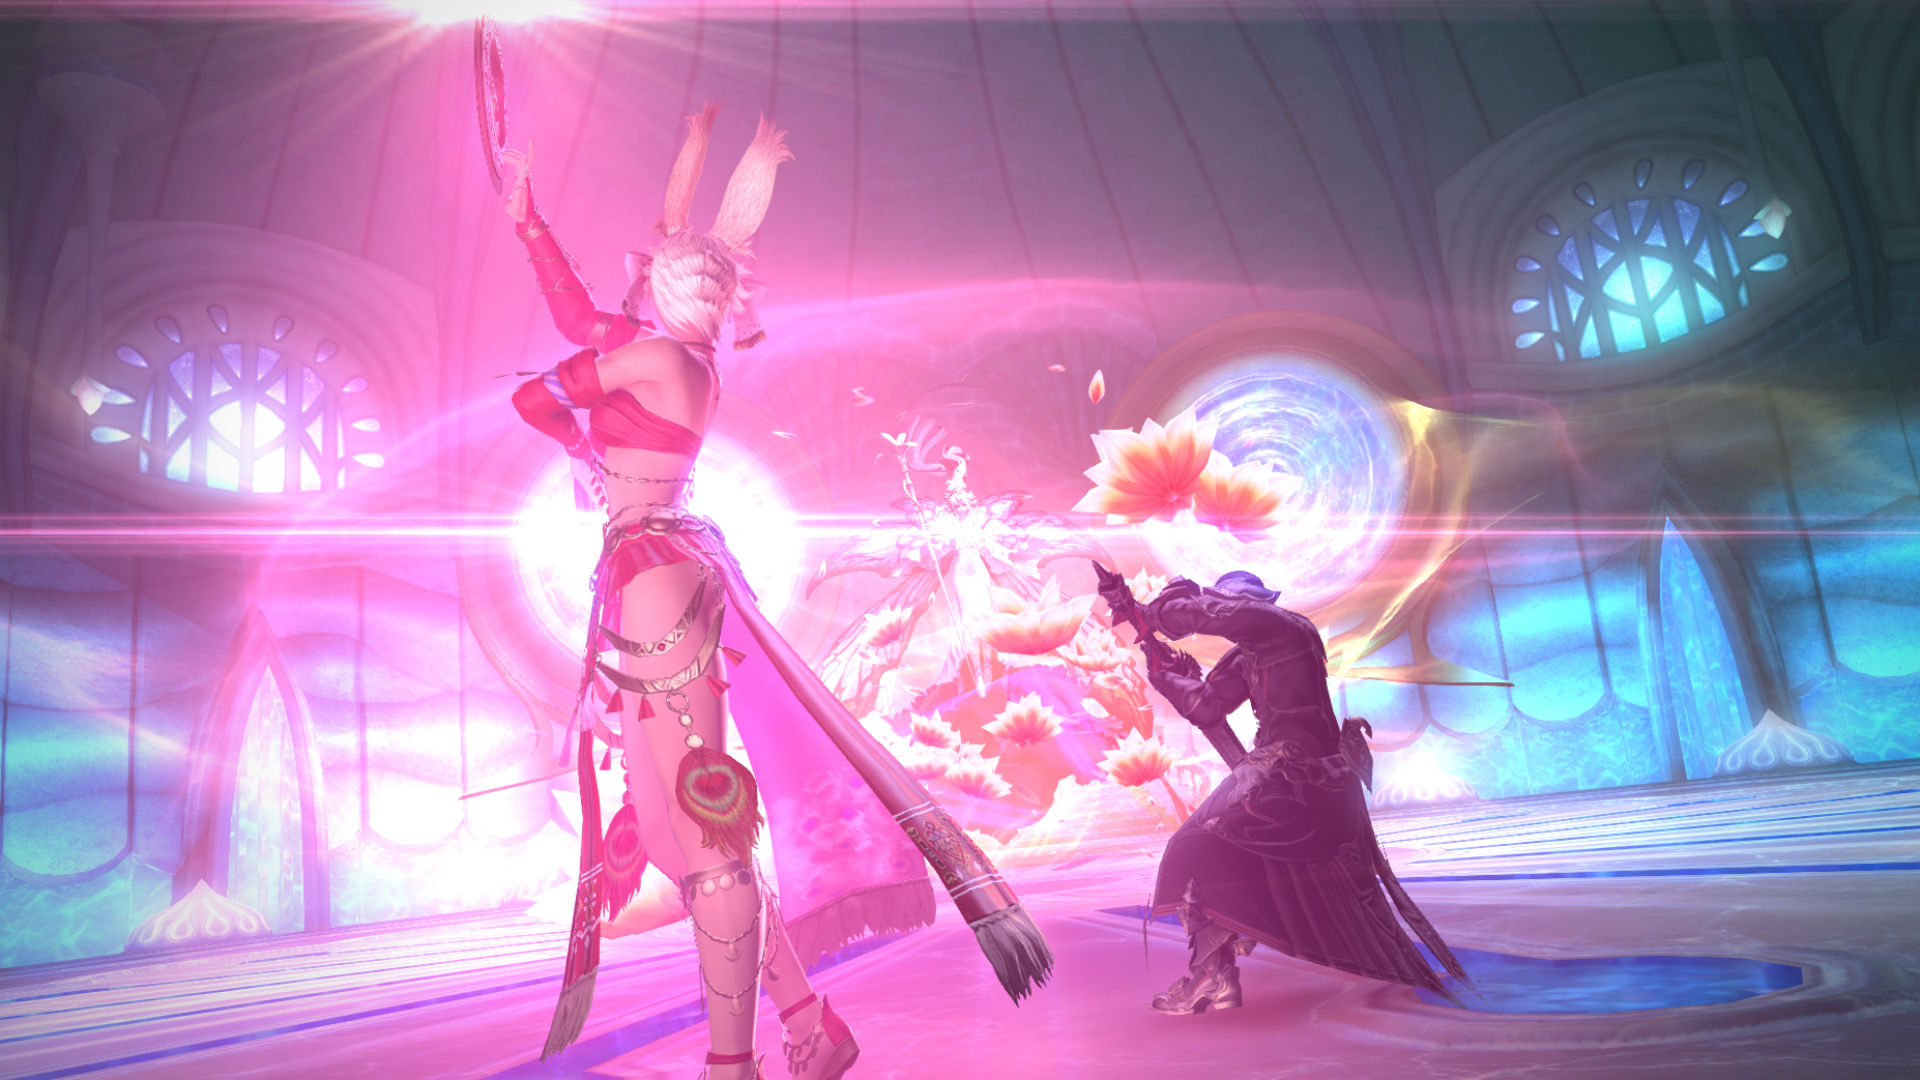 FFXIV leveling guide: how to powerlevel yourself to endgame